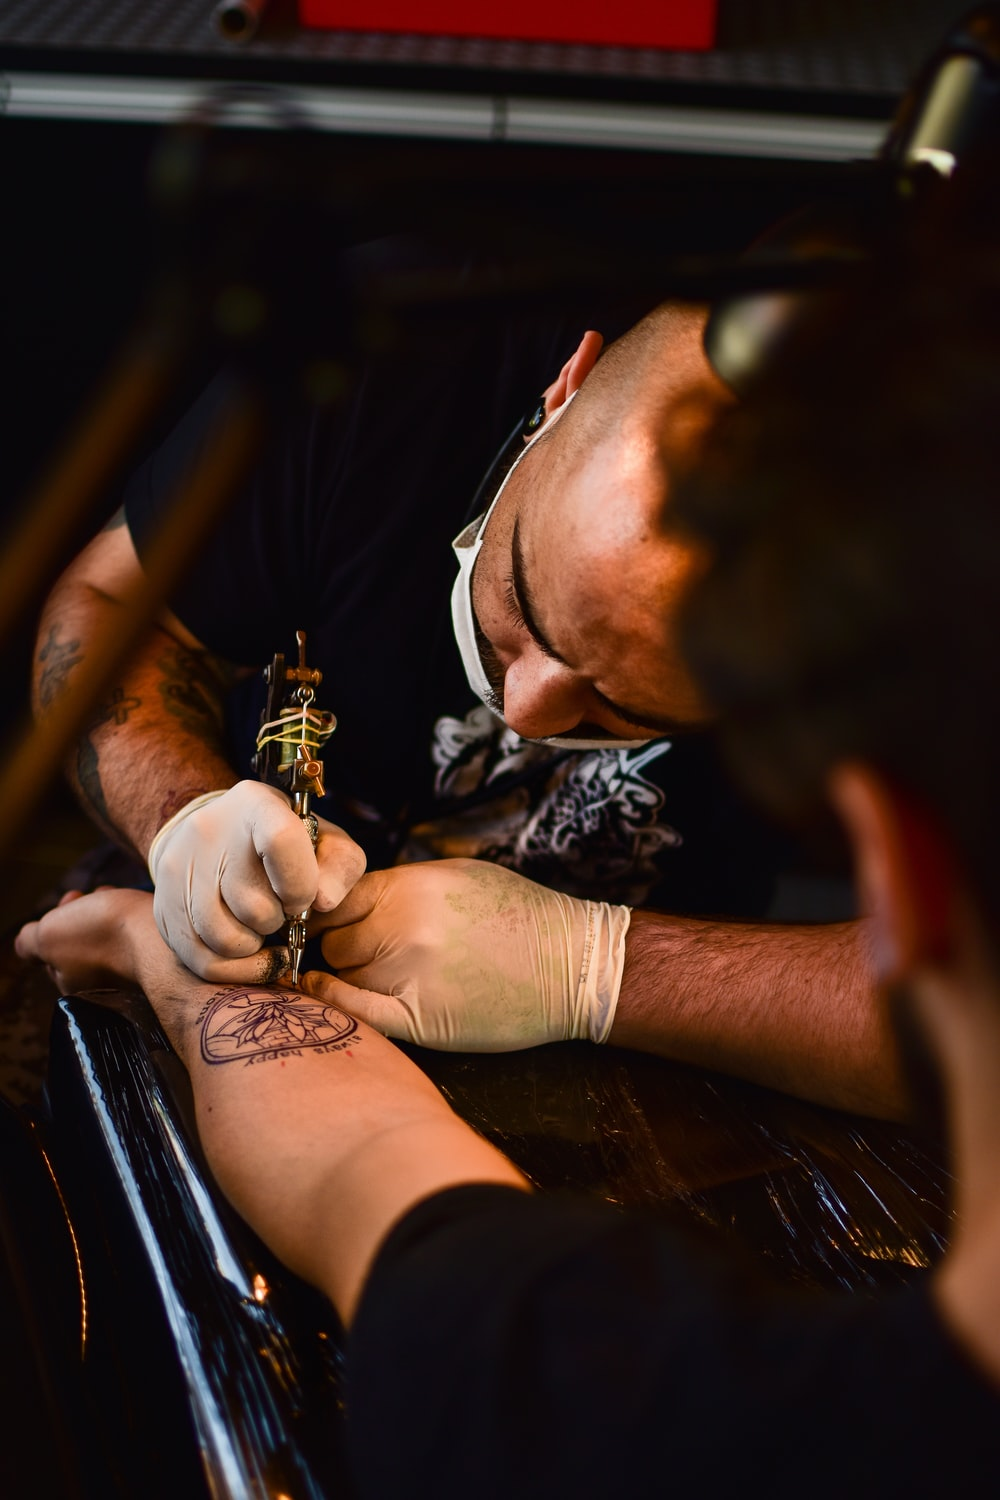 man doing tattoo on human arm